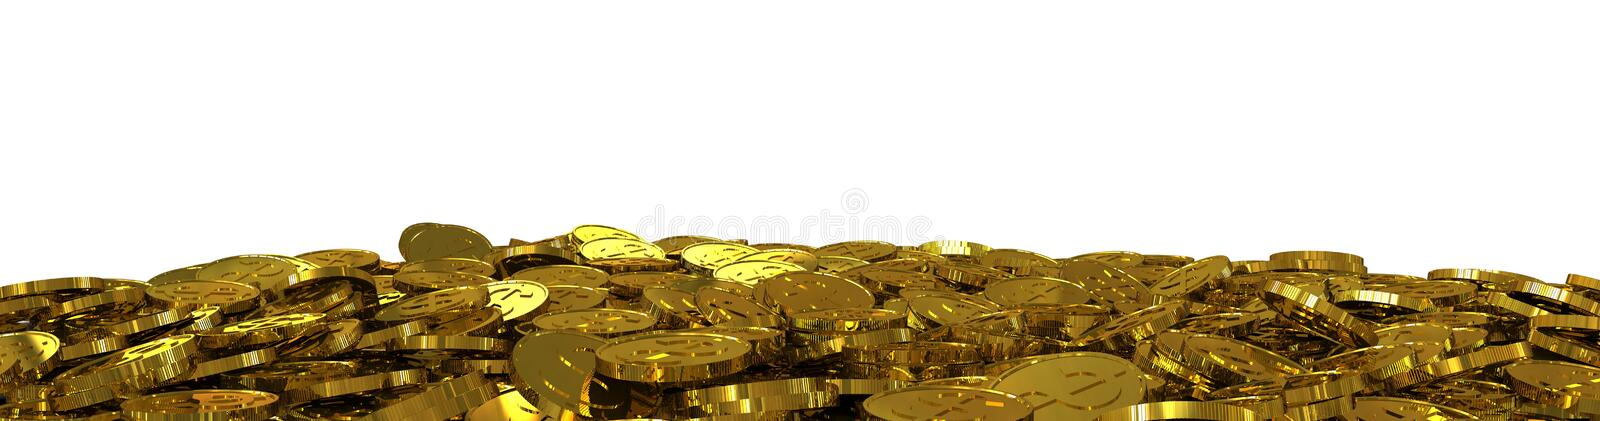 Download Many gold dollar coins stock image. Image of pile, coin - 23326291